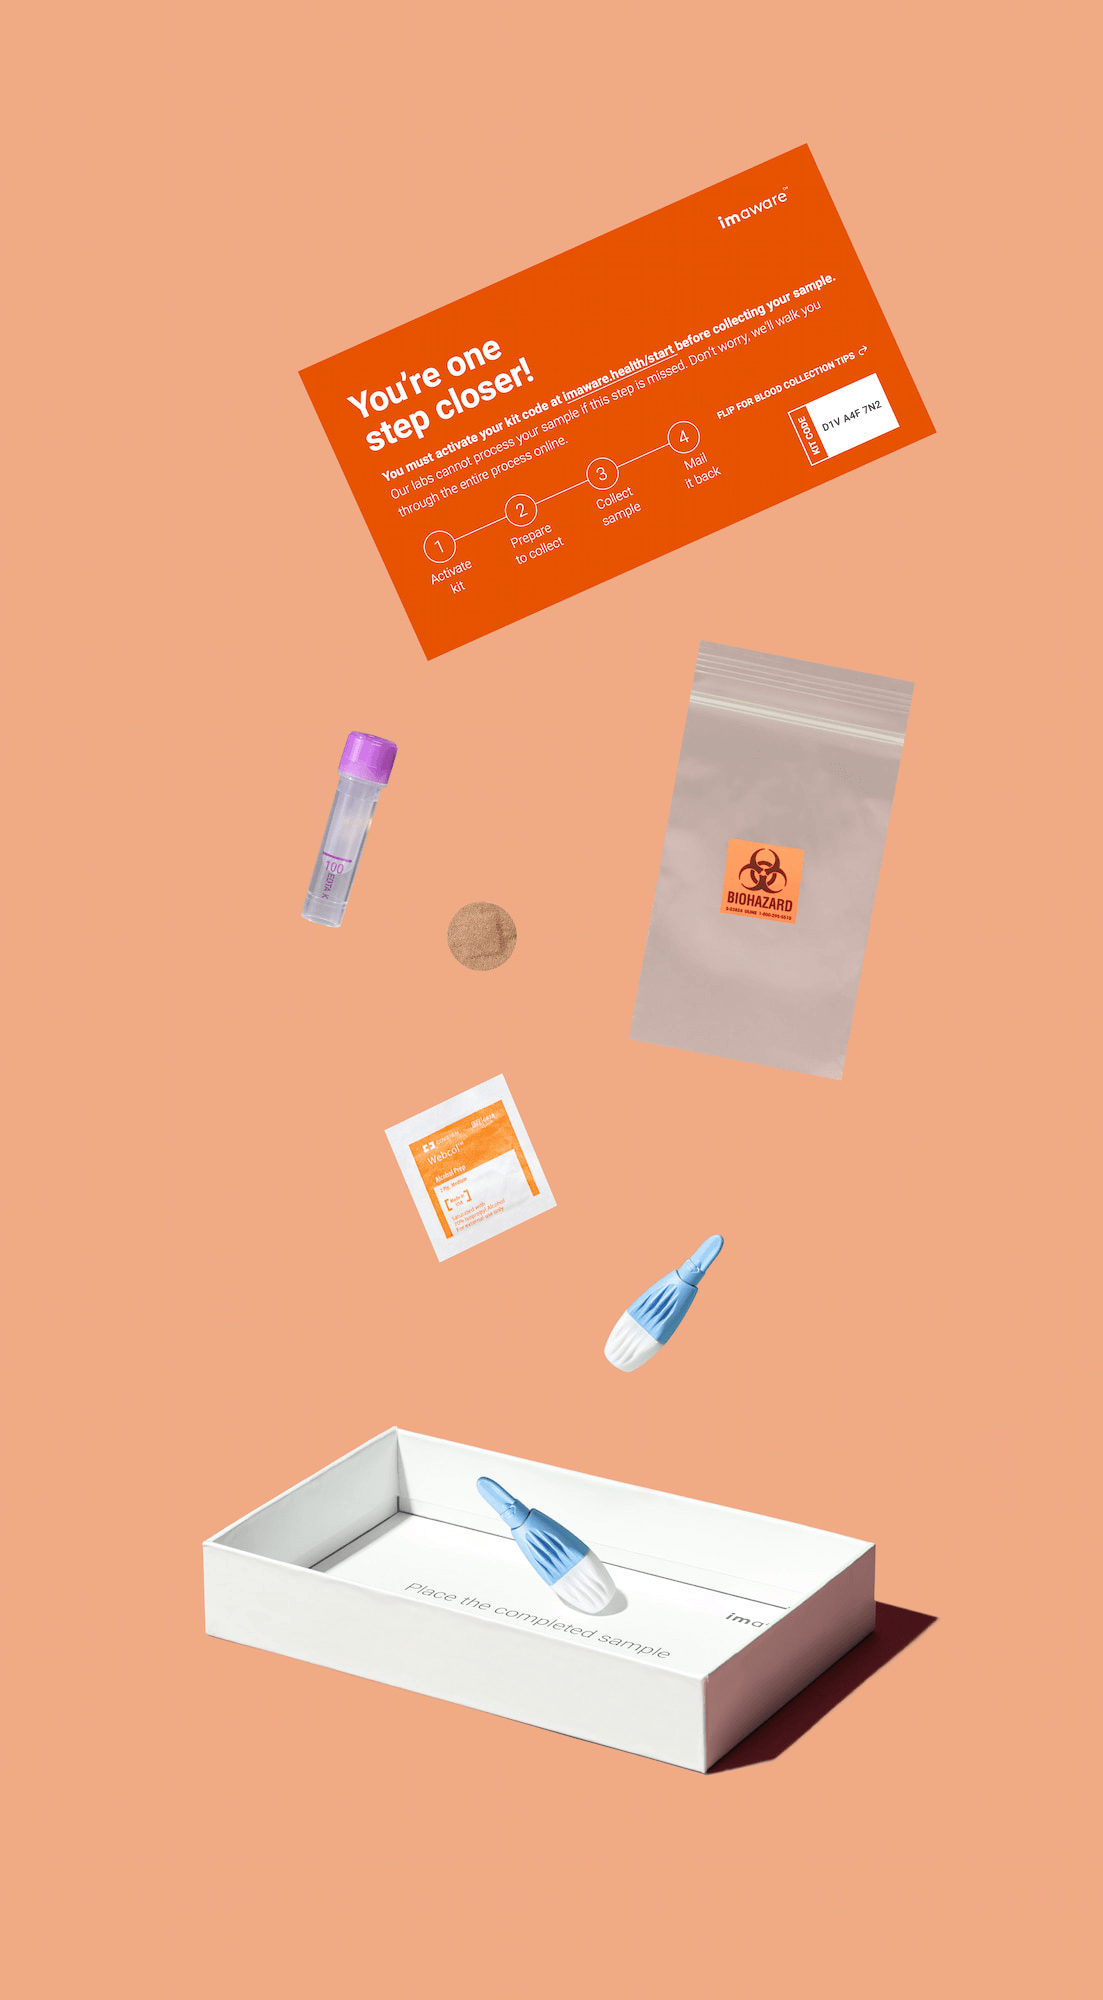 A product box and its contents